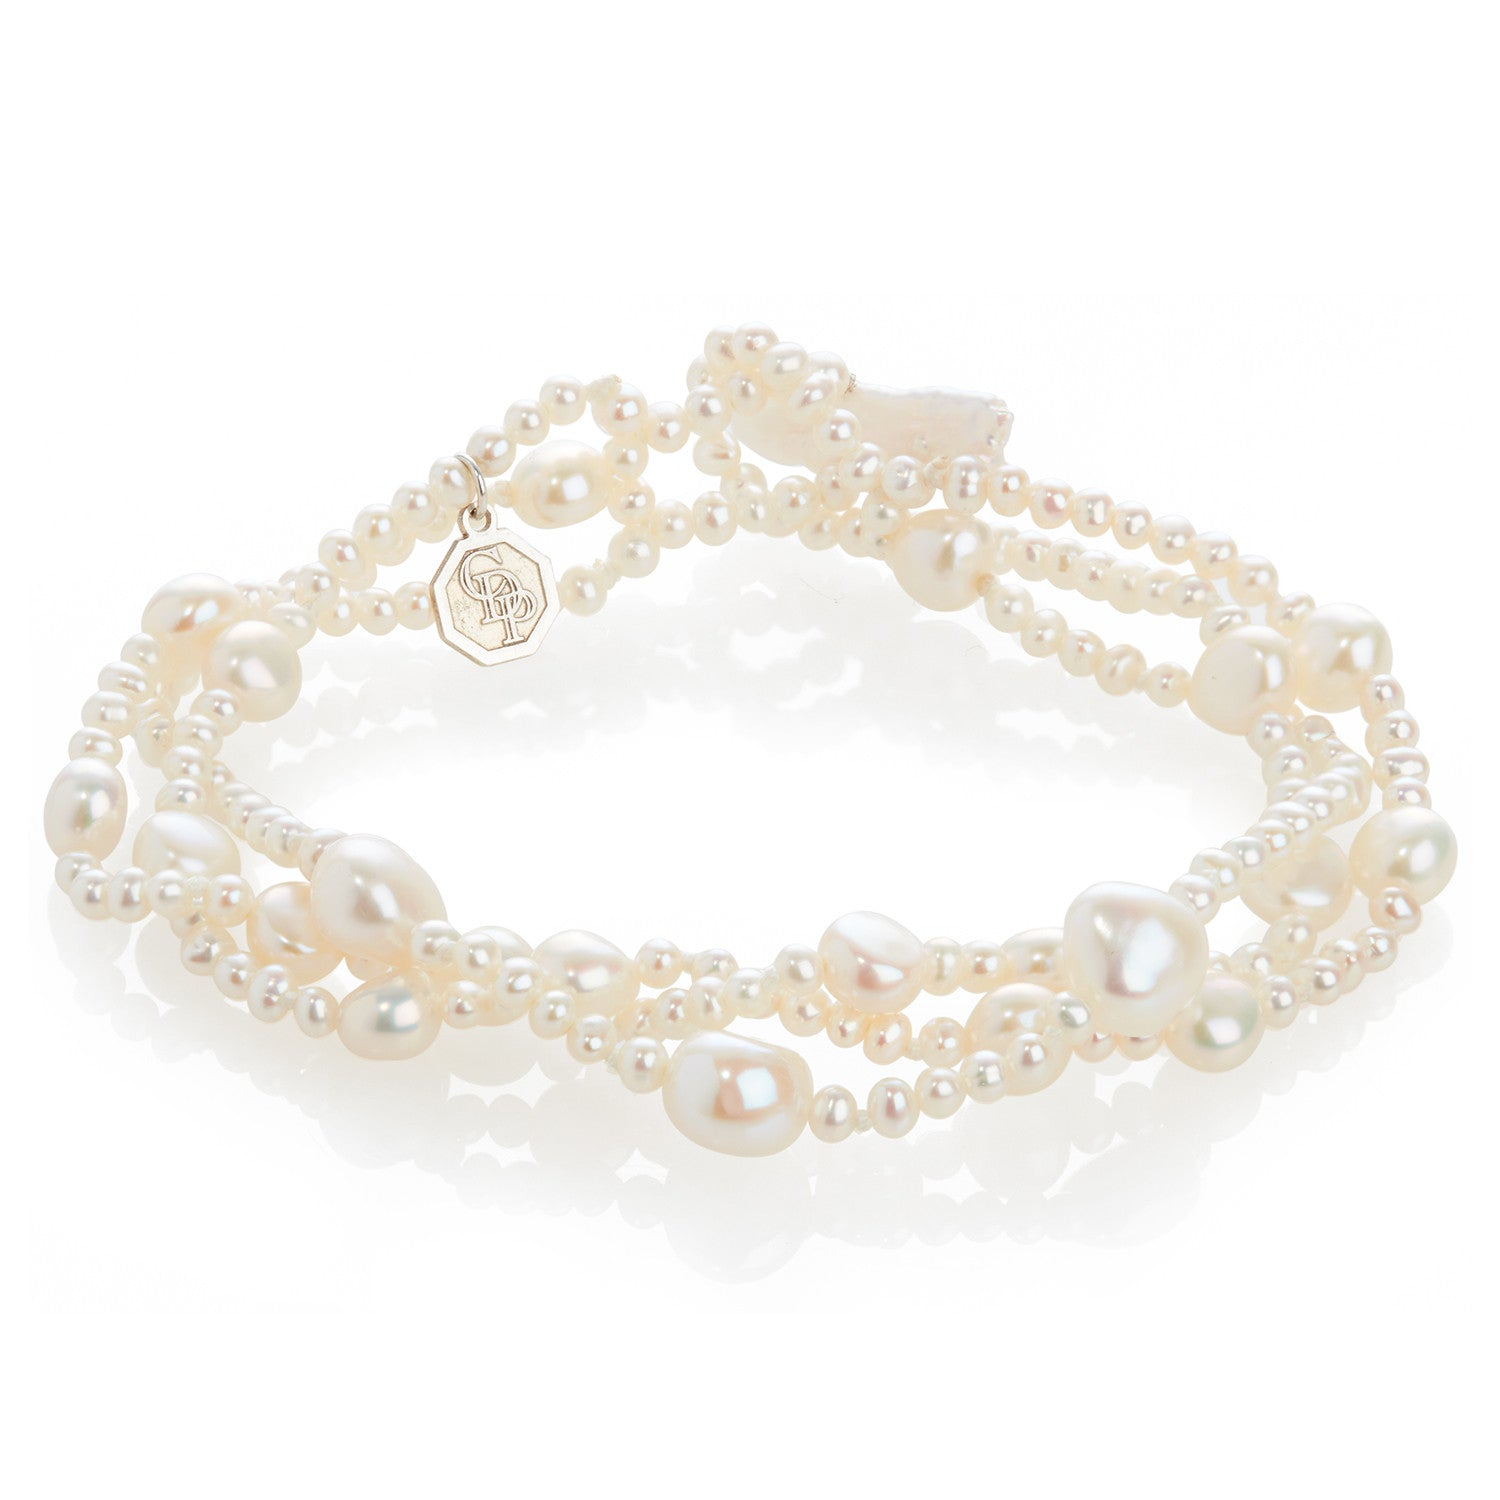 Limited Edition Triple Strand Freshwater Pearl Bracelet